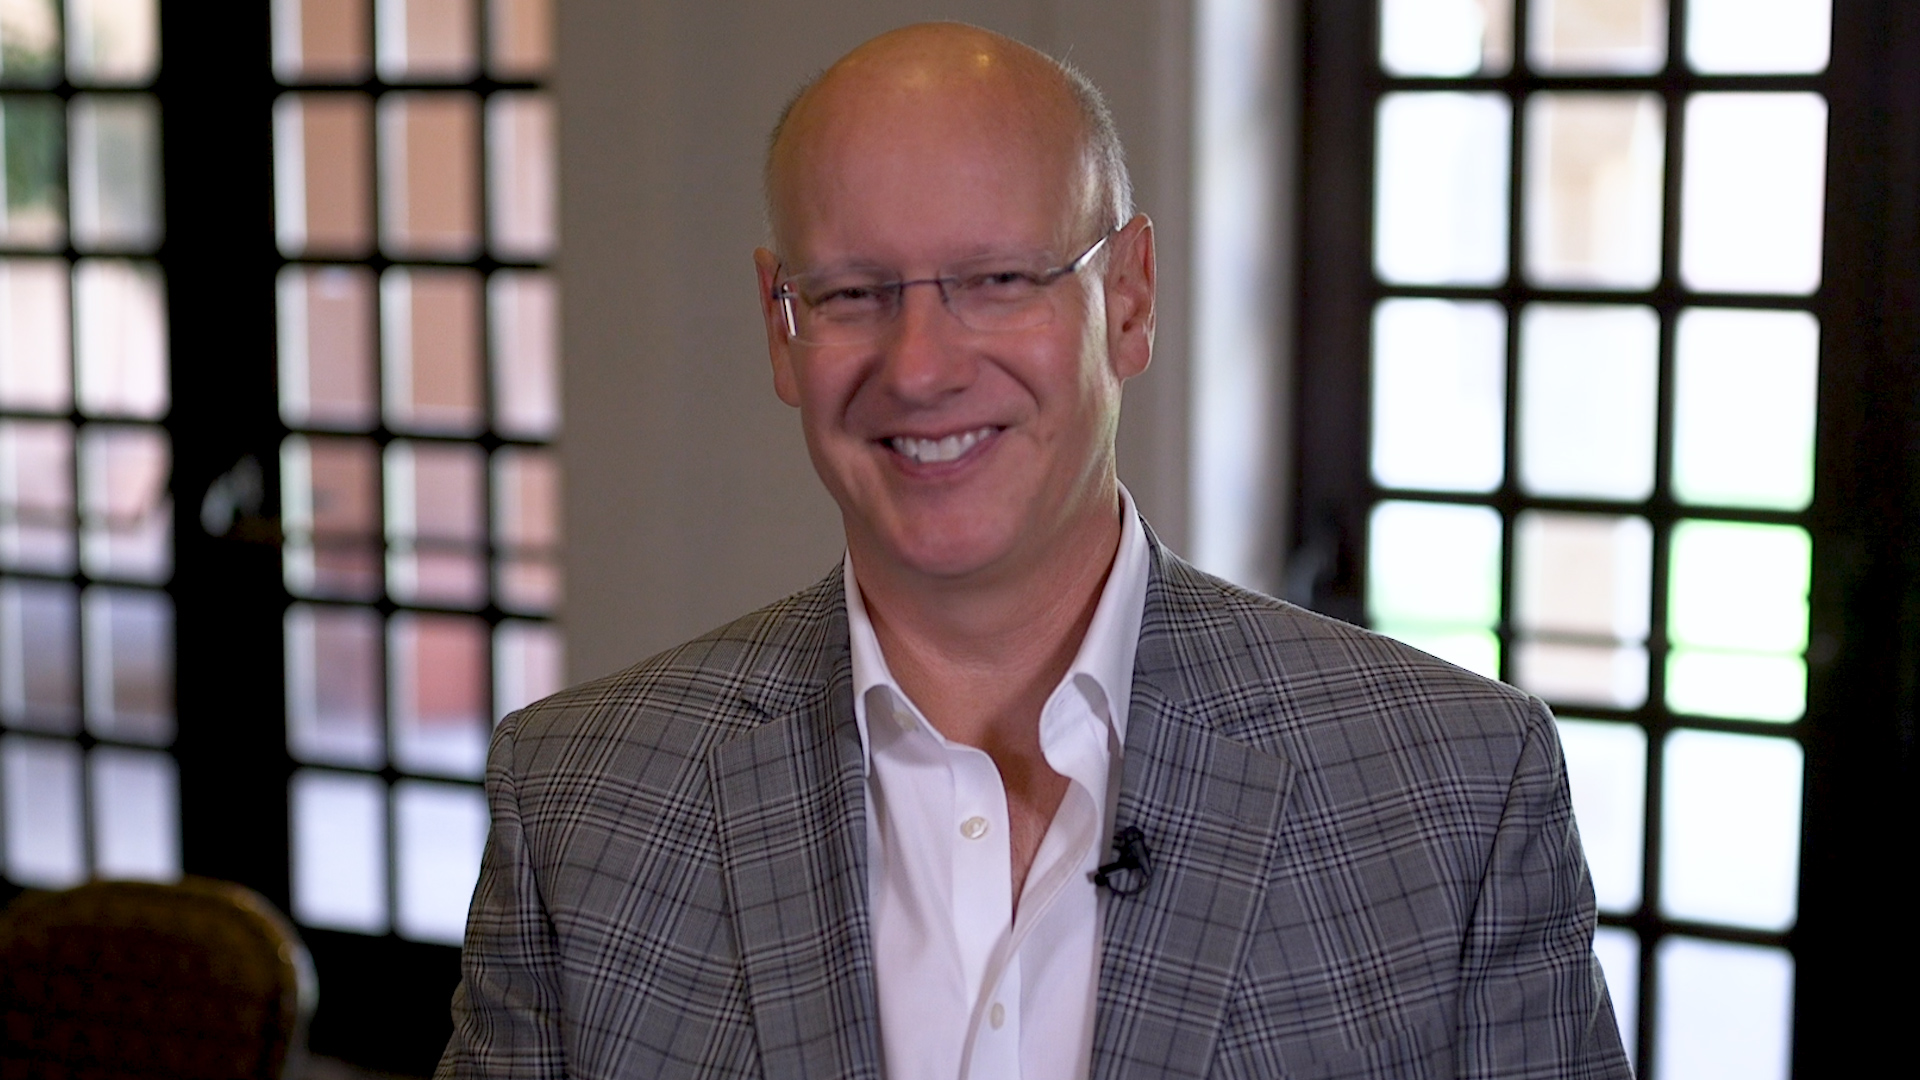 Video preview: Marco Boer: drupa 2020 Should Be Part of Your Trade Show Plans